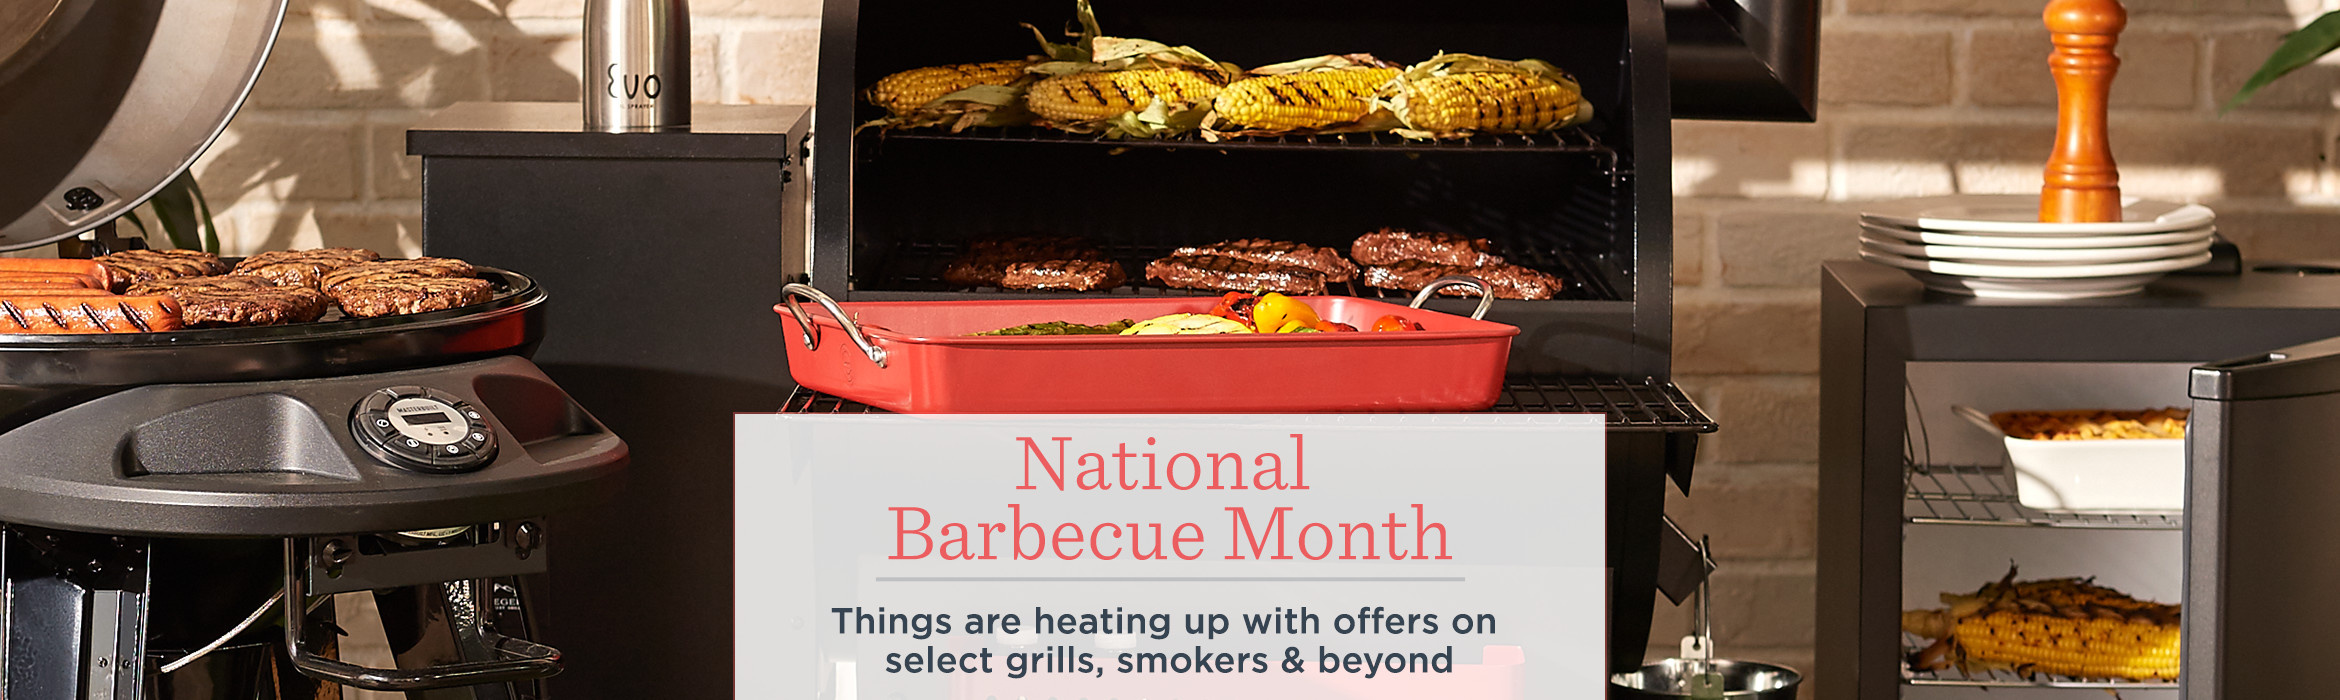 National Barbecue Month  Things are heating up with offers on select grills, smokers & beyond